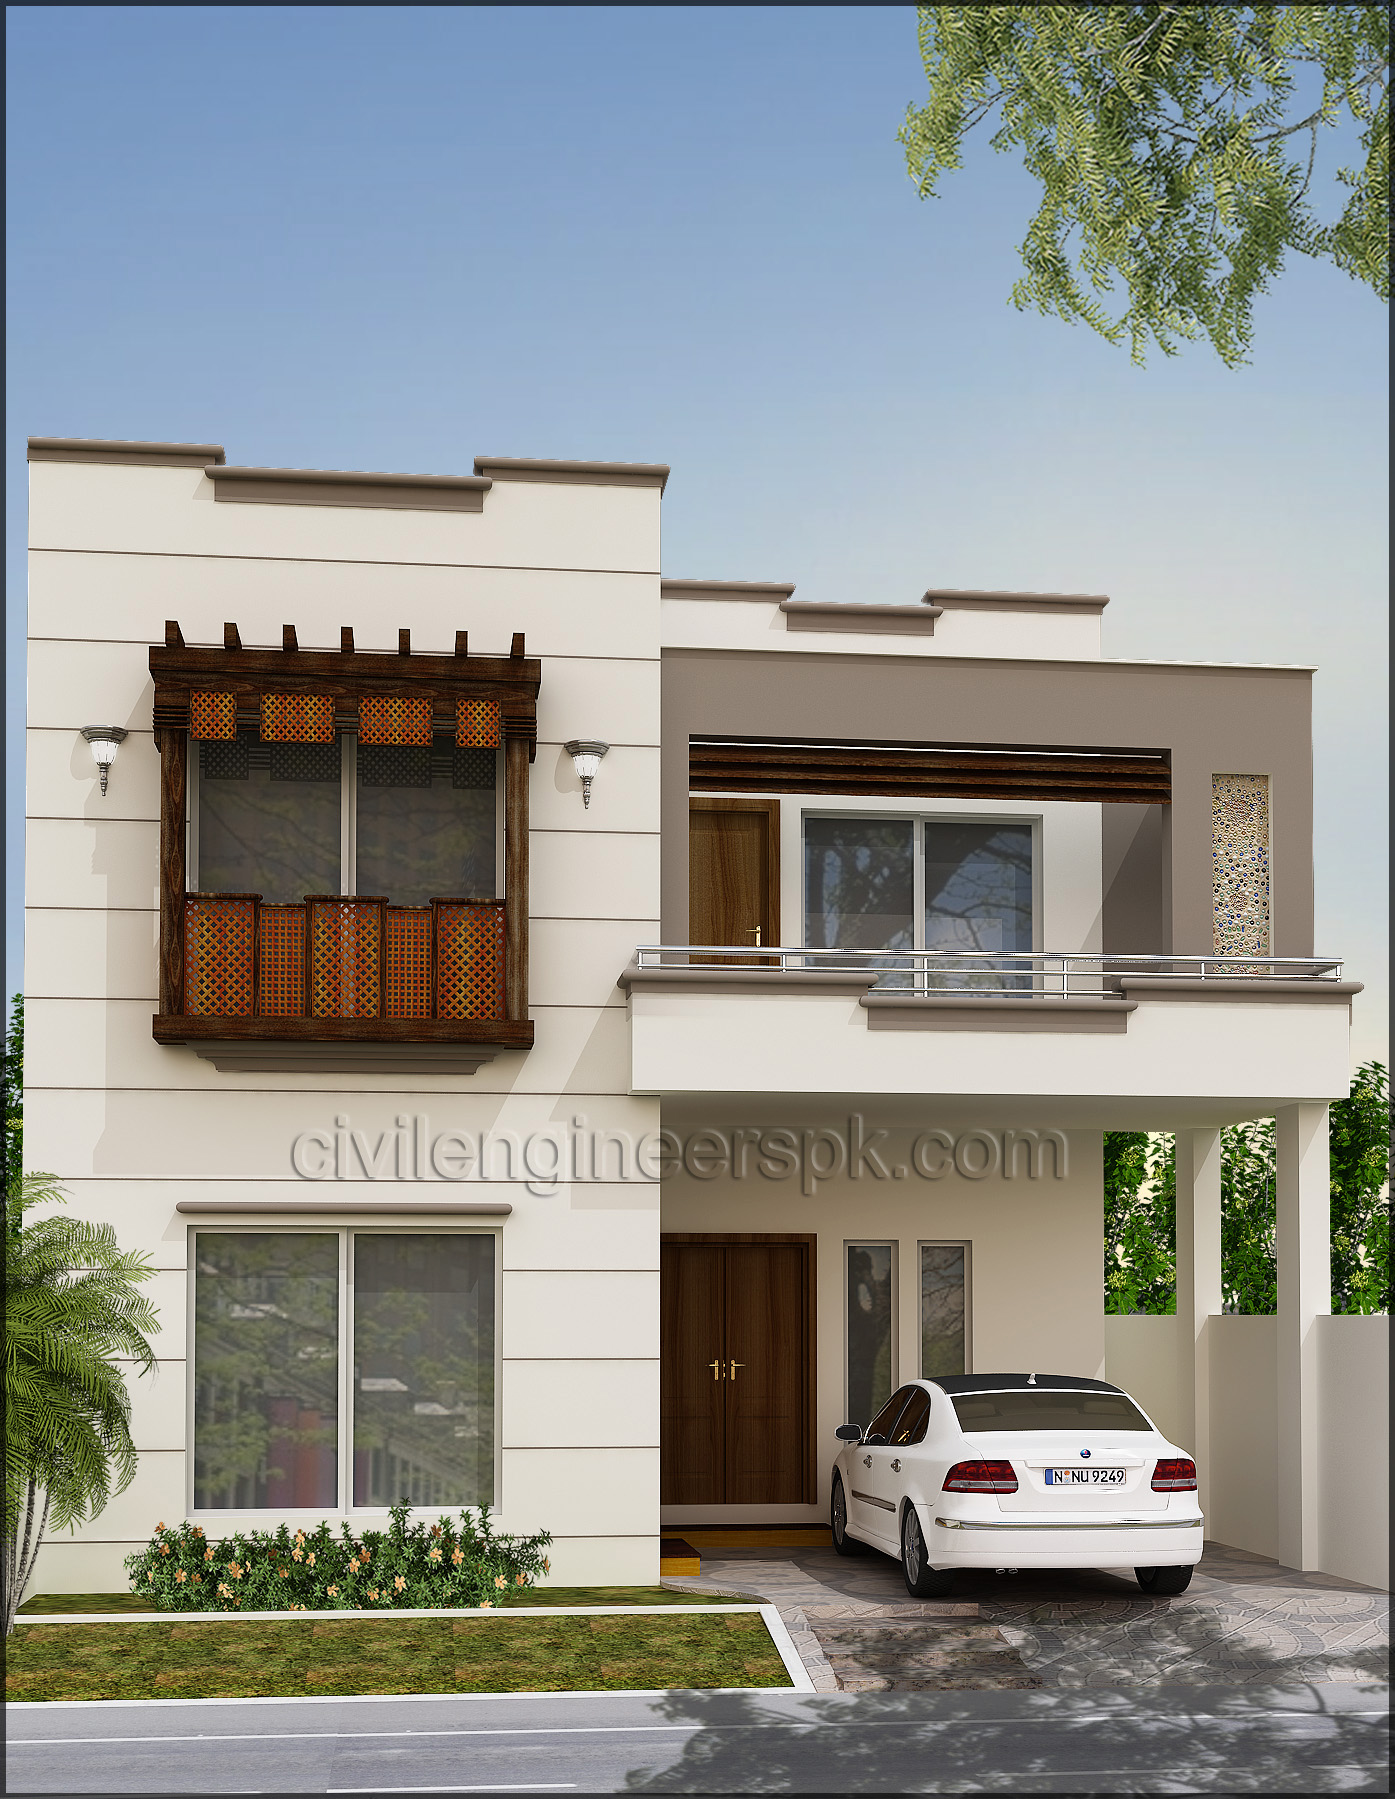 Front views civil engineers pk for House elevation